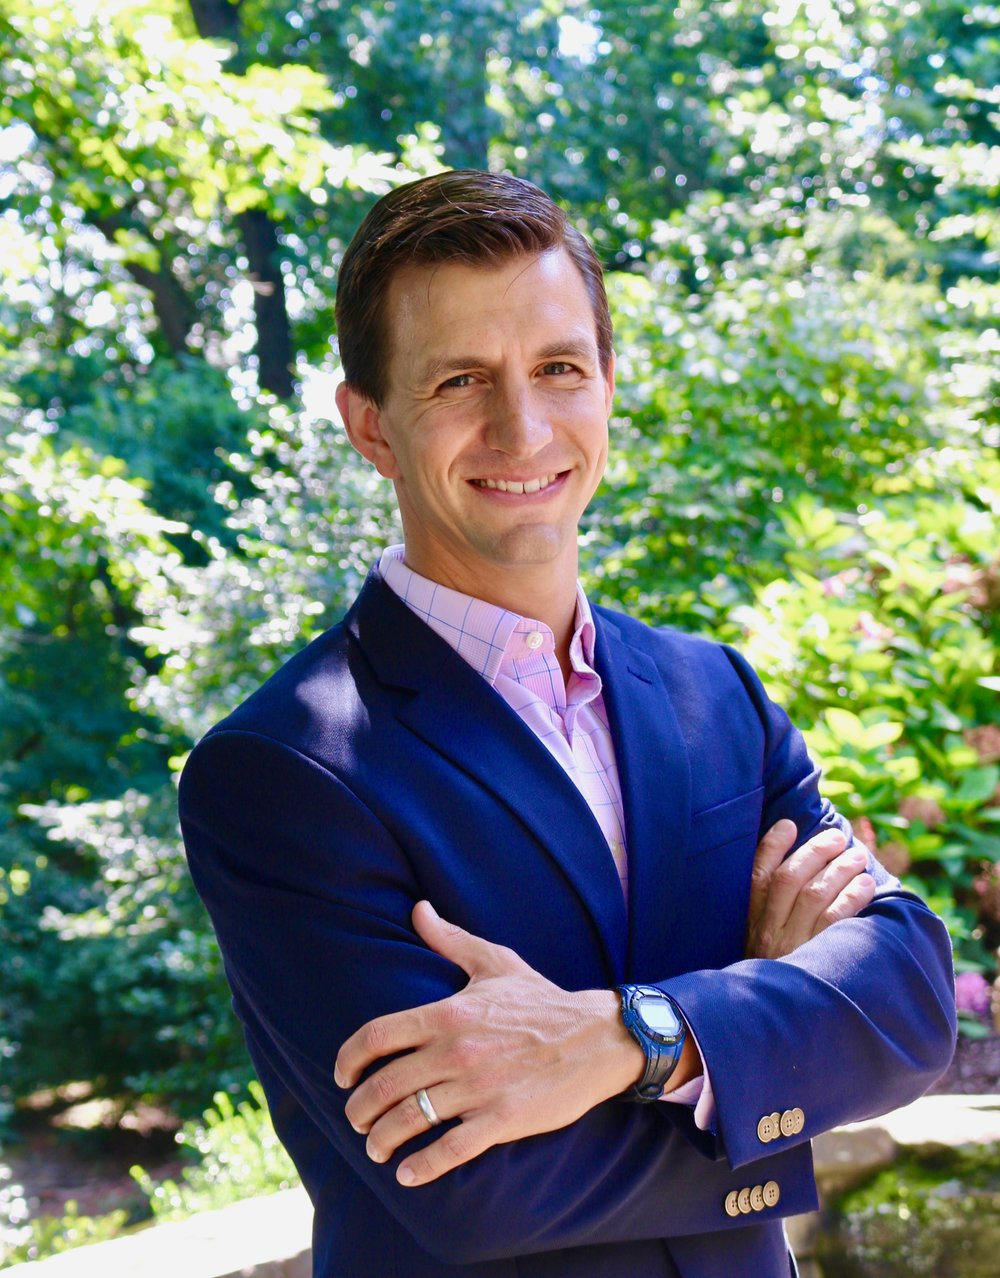 Rich Moss - Join us on October 19th for an evening with Rich Moss, Director of Admissions at The Heights School in Potomac, Maryland. A graduate of The Heights, and the University of Notre Dame for undergraduate and law degrees, Rich left a career at a major Washington, D.C. law firm for his dream job: teaching at The Heights. Rich also teaches AP US Government and hosts the popular Heights Forum Podcast. Rich will offer practical advice for raising contemplatives in a digital age, the role of technology in our homes, and how to use it in ways that bring your family together.RSVP NOW | LEARN MORE ABOUT RICH